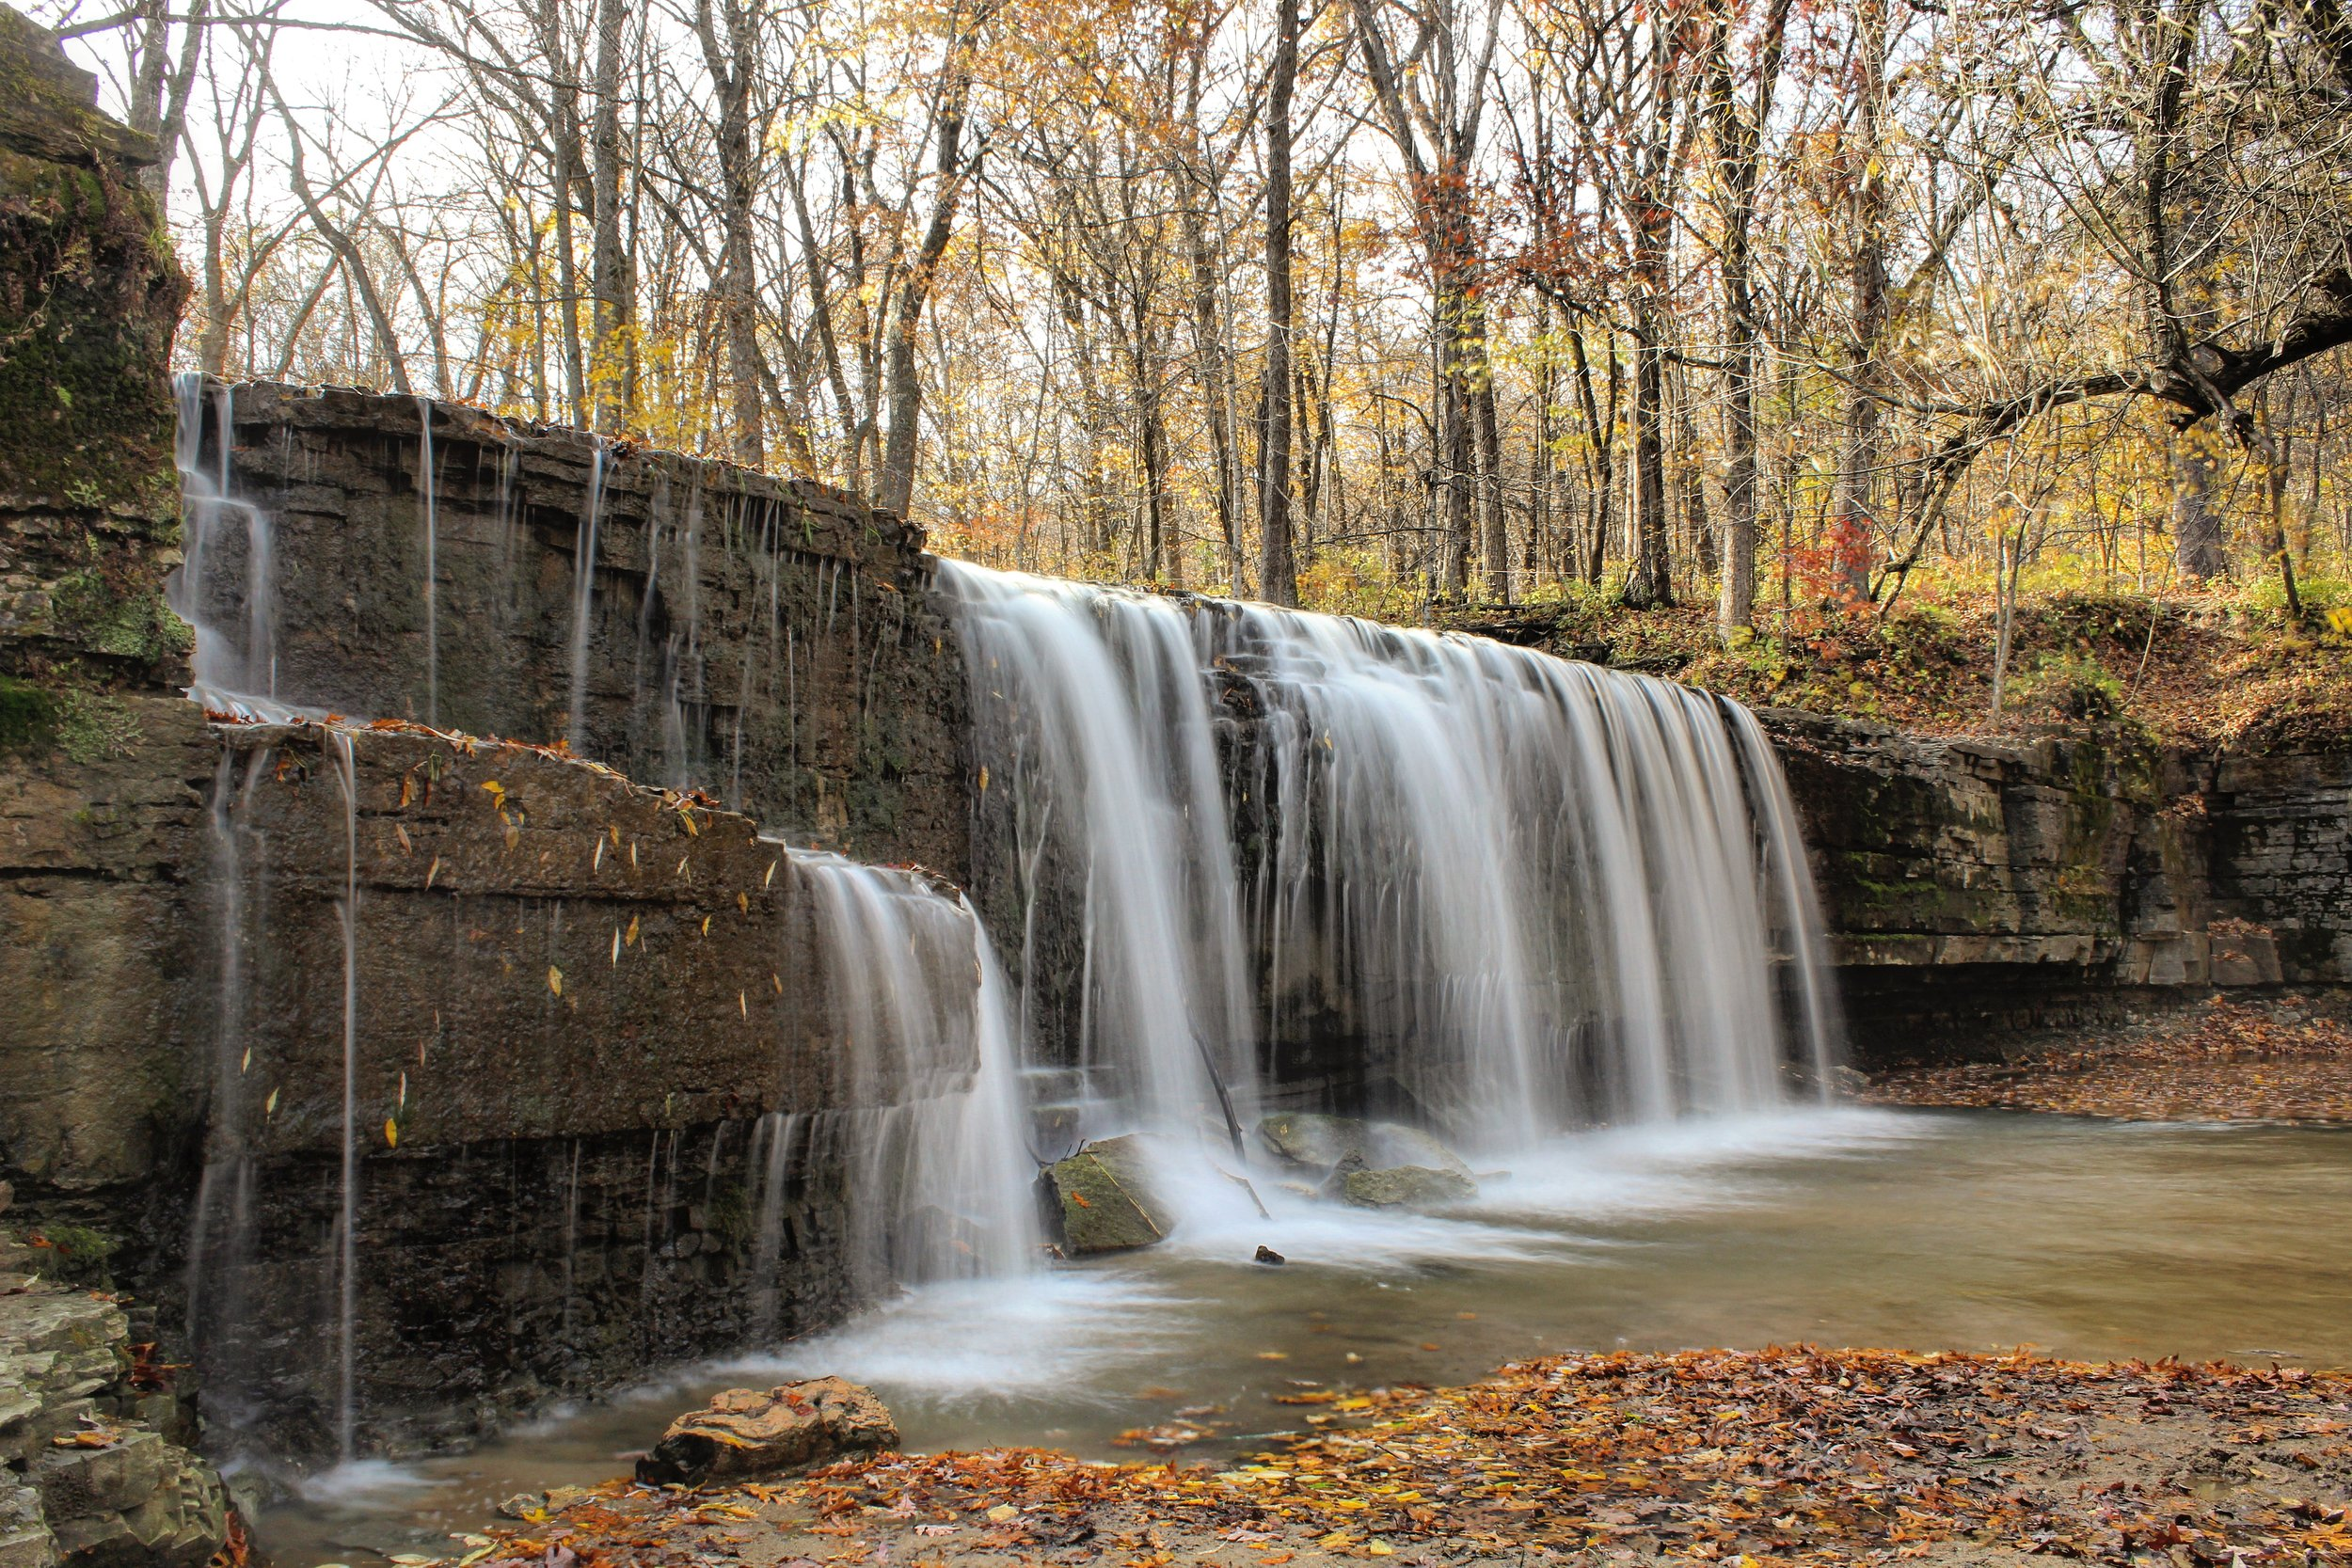 Fourth Stop: Hidden Falls at Nerstrand-Big Woods State Park.